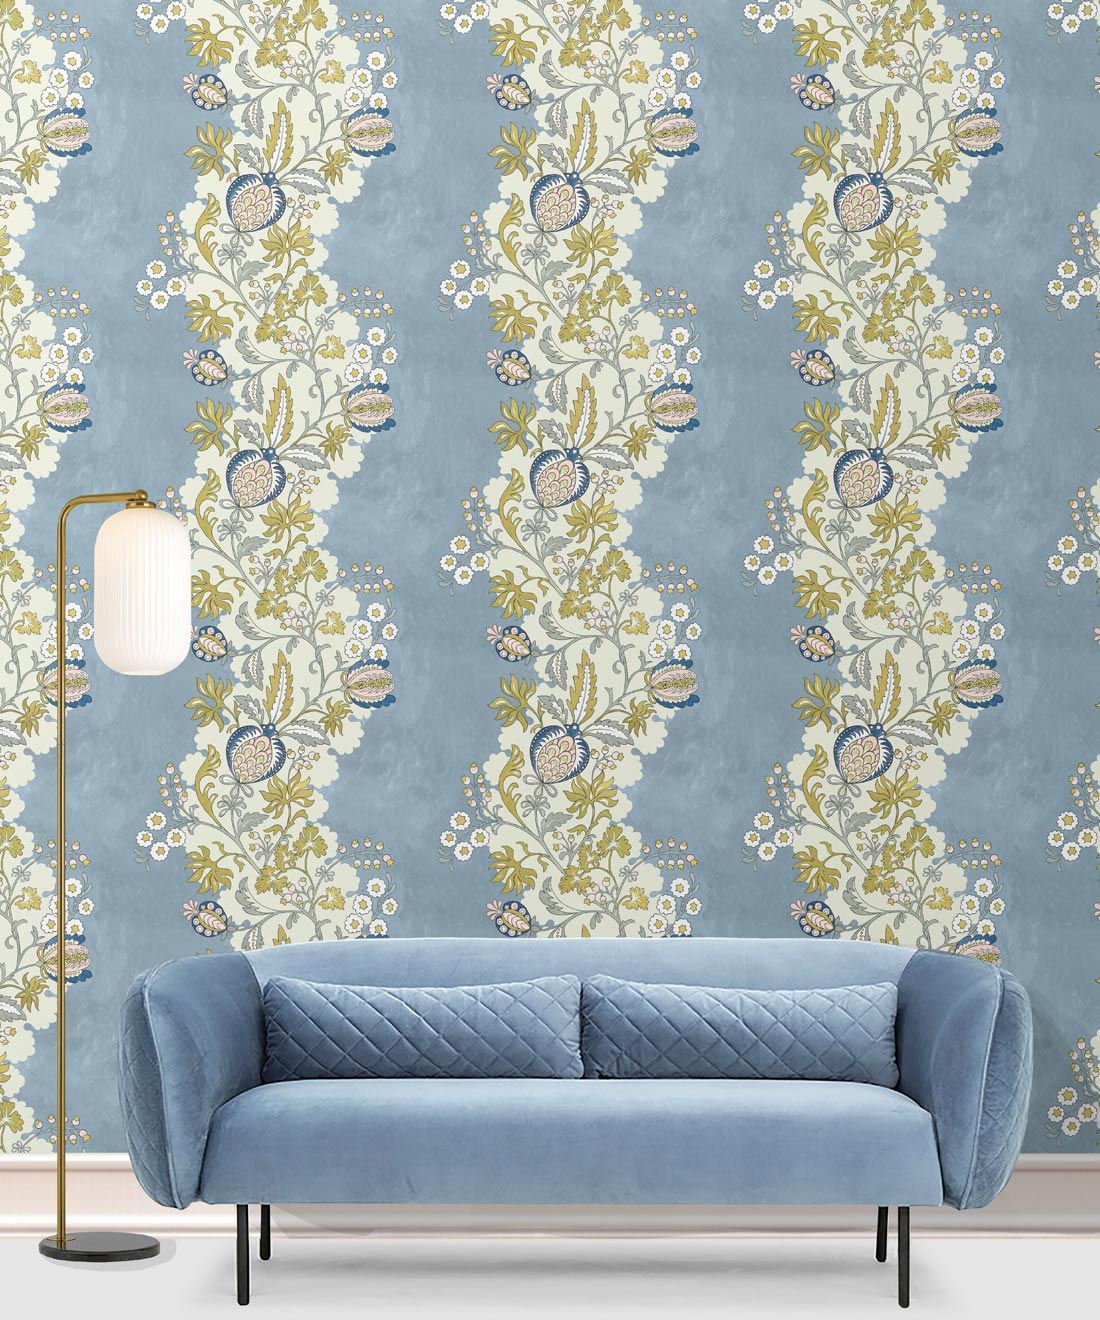 Pomegranate Wallpaper • French Blue • Insitu with blue sofa